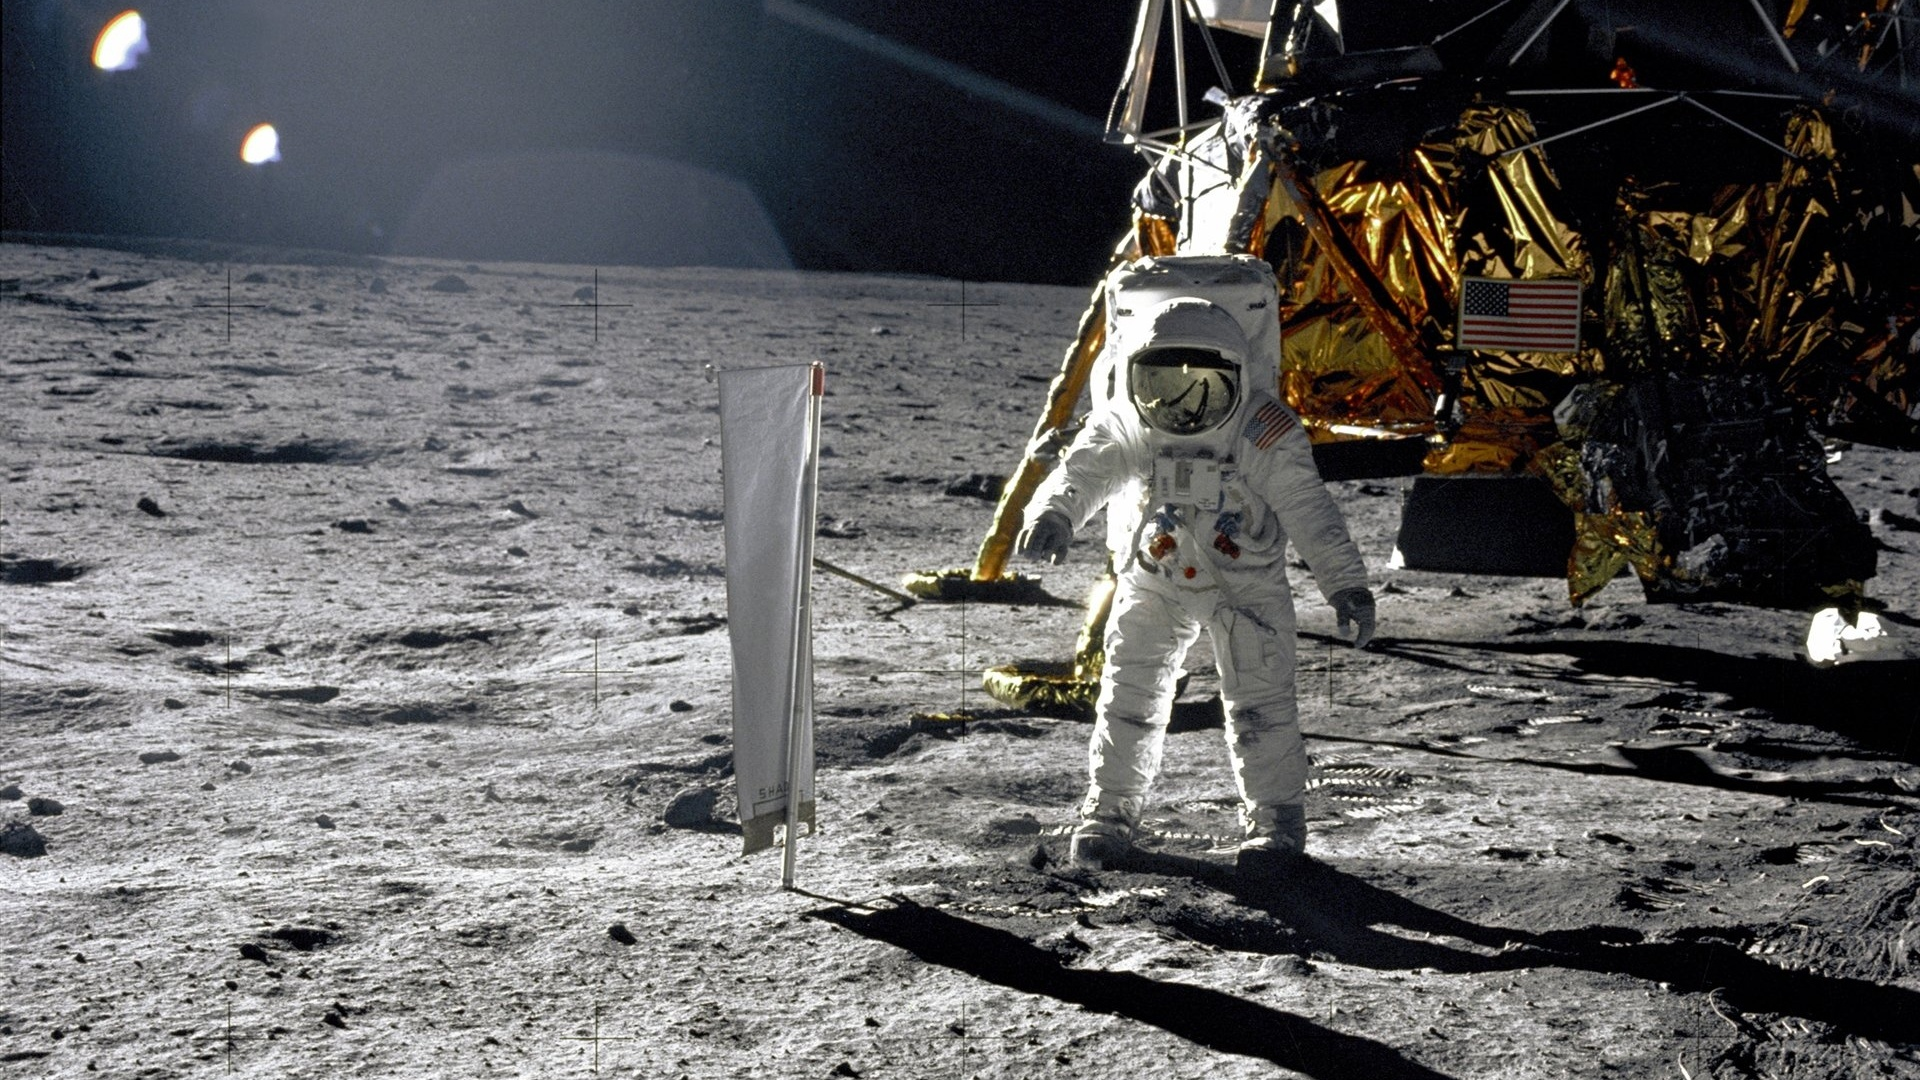 30 kickass and interesting facts about moon landing - HD1920×1080